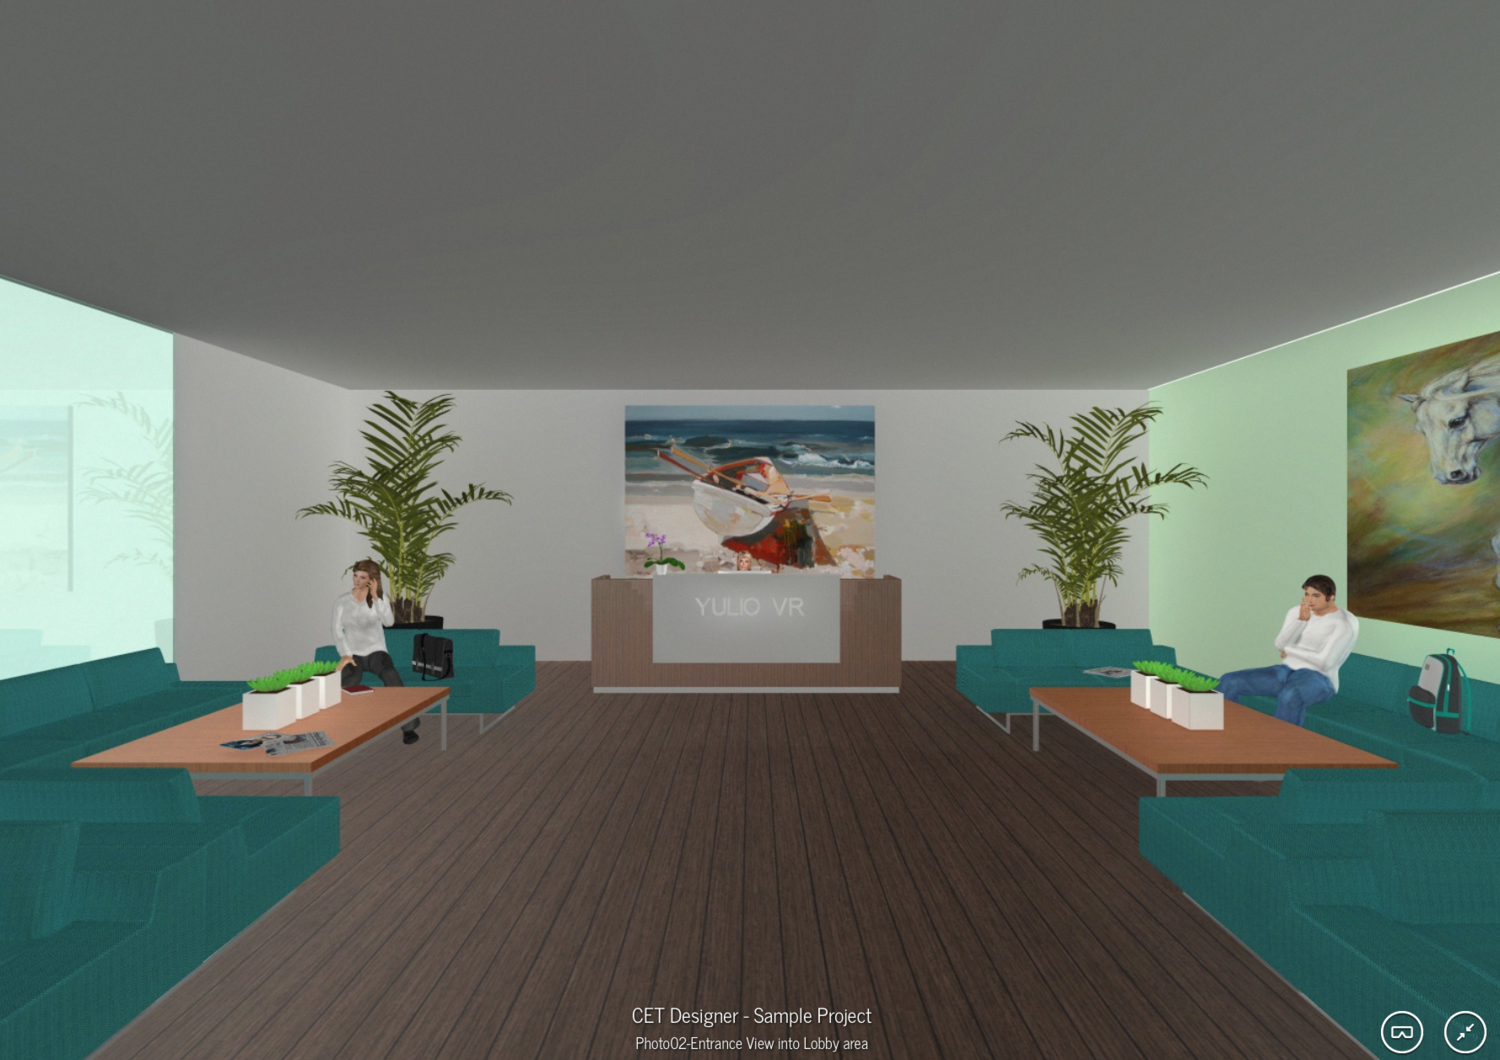 94 Interior Design Project Cost Configuras Collaboration With Yulio Lowers Vr Cost For